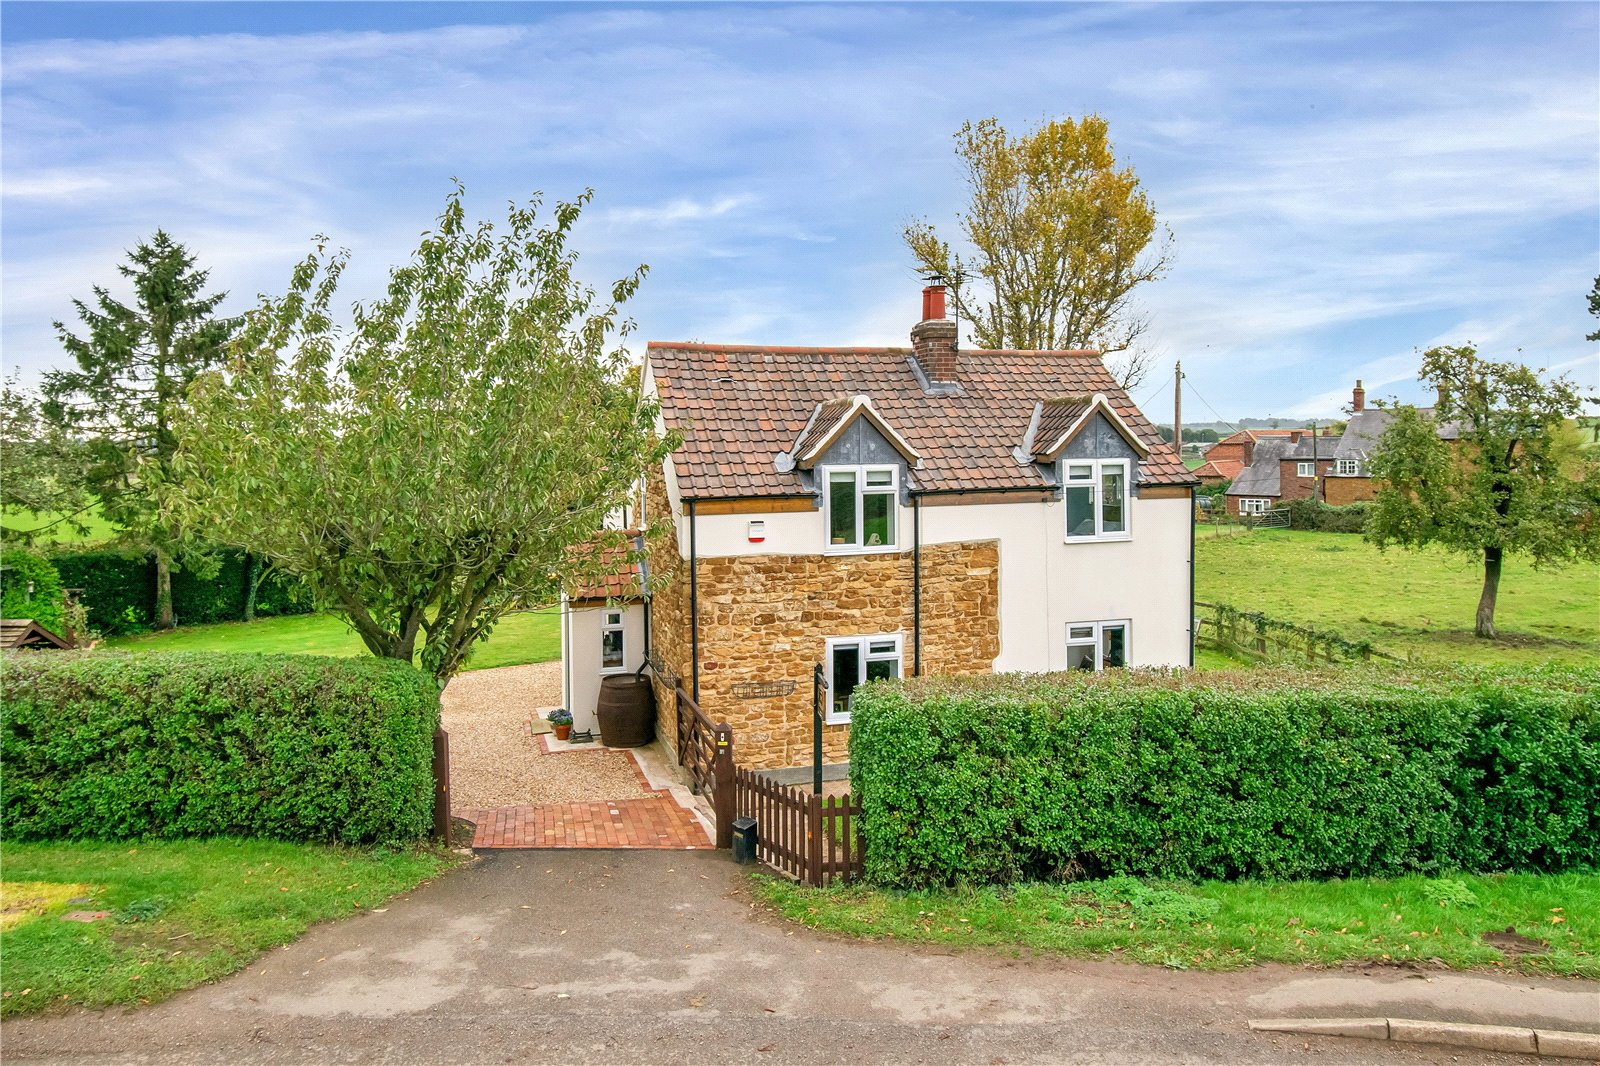 charming period cottage in countryside in Leicestershire